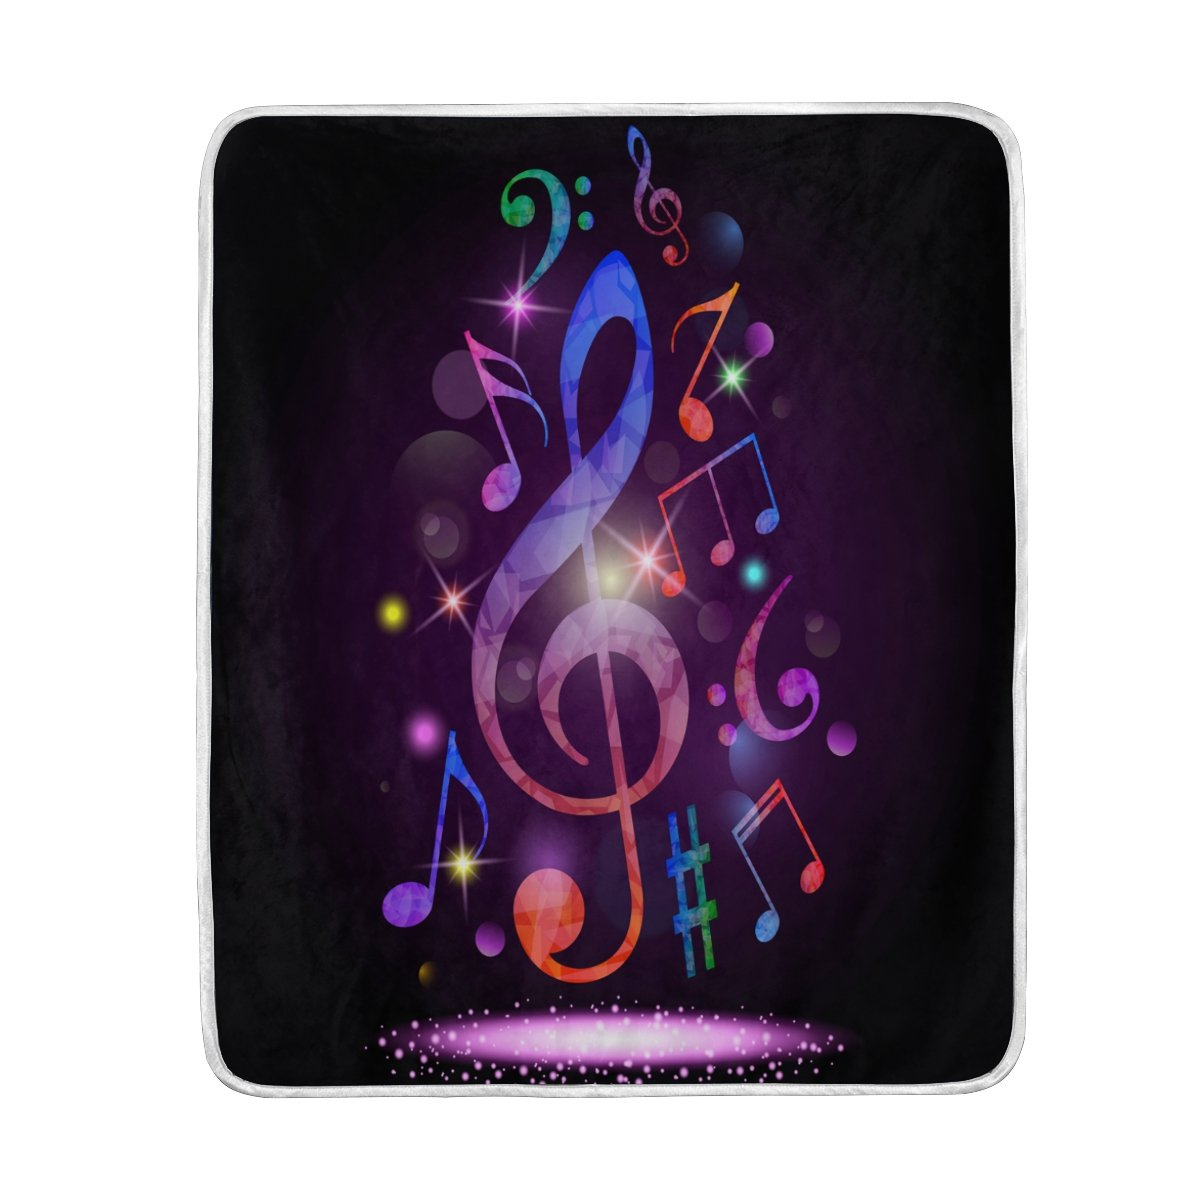 ALAZA Home Decor Colorful Music Note Blanket Soft Warm Blankets for Bed Couch Sofa Lightweight Travelling Camping 60 x 50 Inch Throw Size for Kids Boys Women